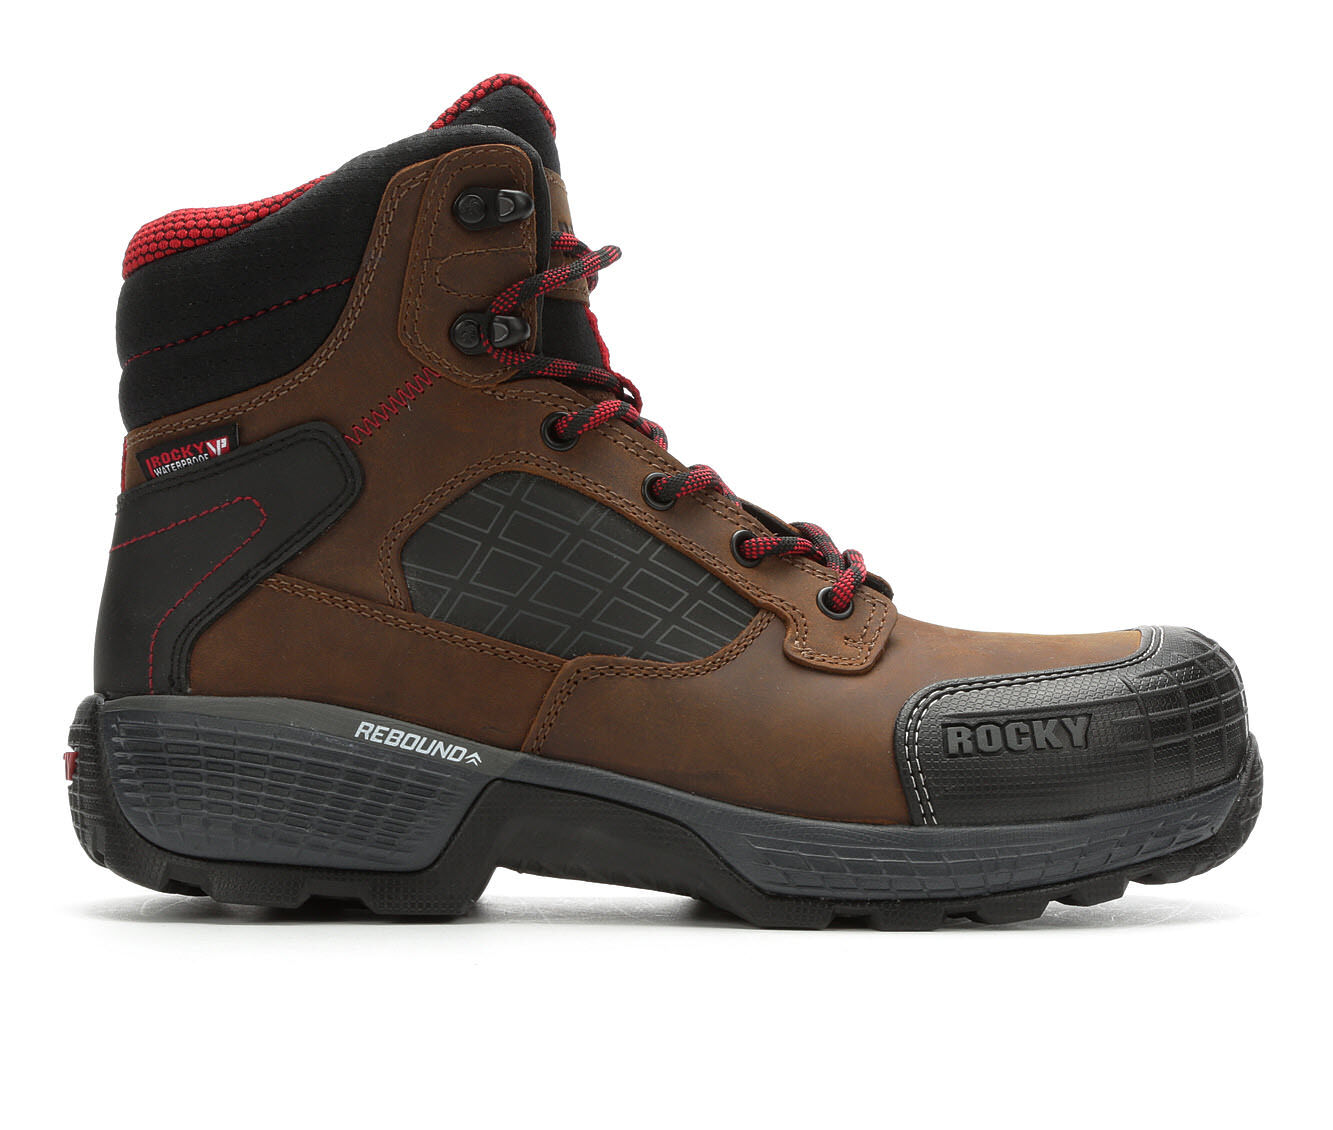 best place discount 2014 new Men's Rocky TreadFlex 6 In Composite Toe Work Boots under $60 cheap price VpSDoy